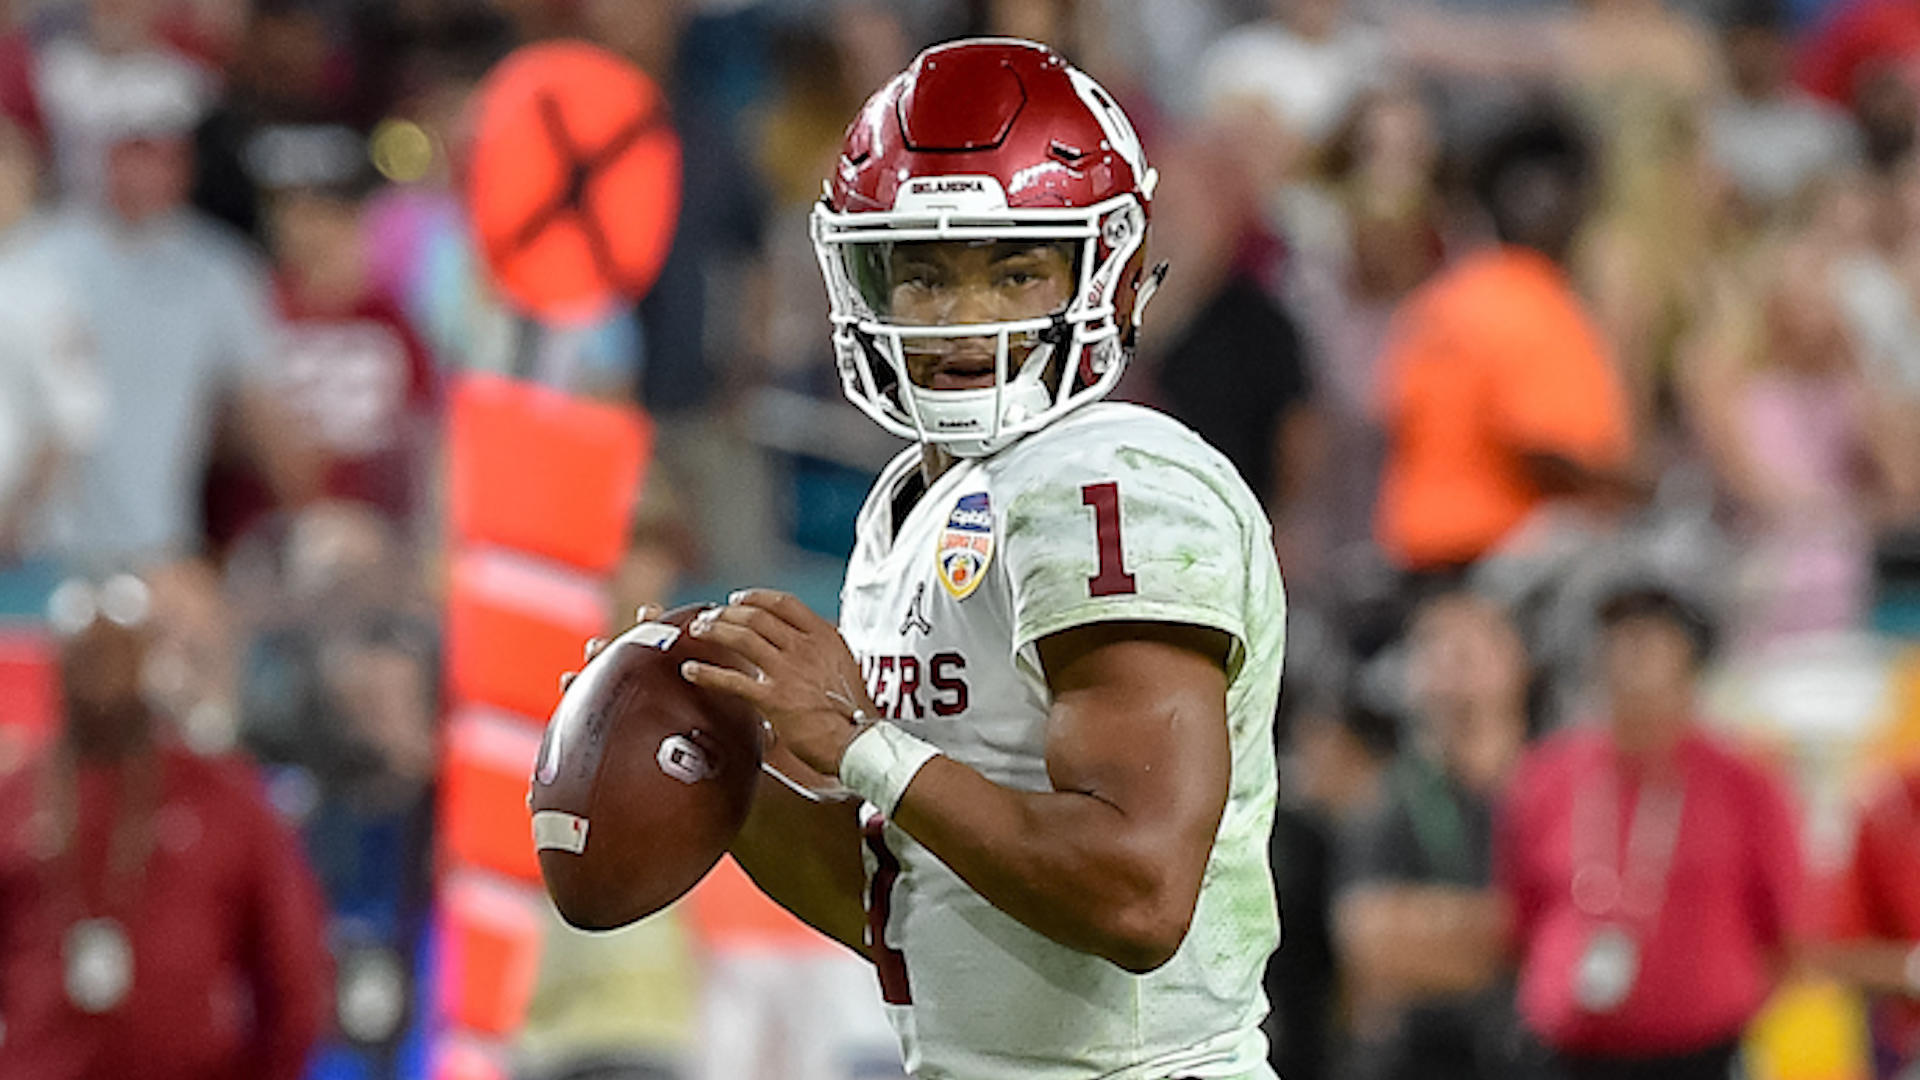 2019 NFL Draft Grades: Cardinals get a C- for picking Kyler Murray No. 1 overall